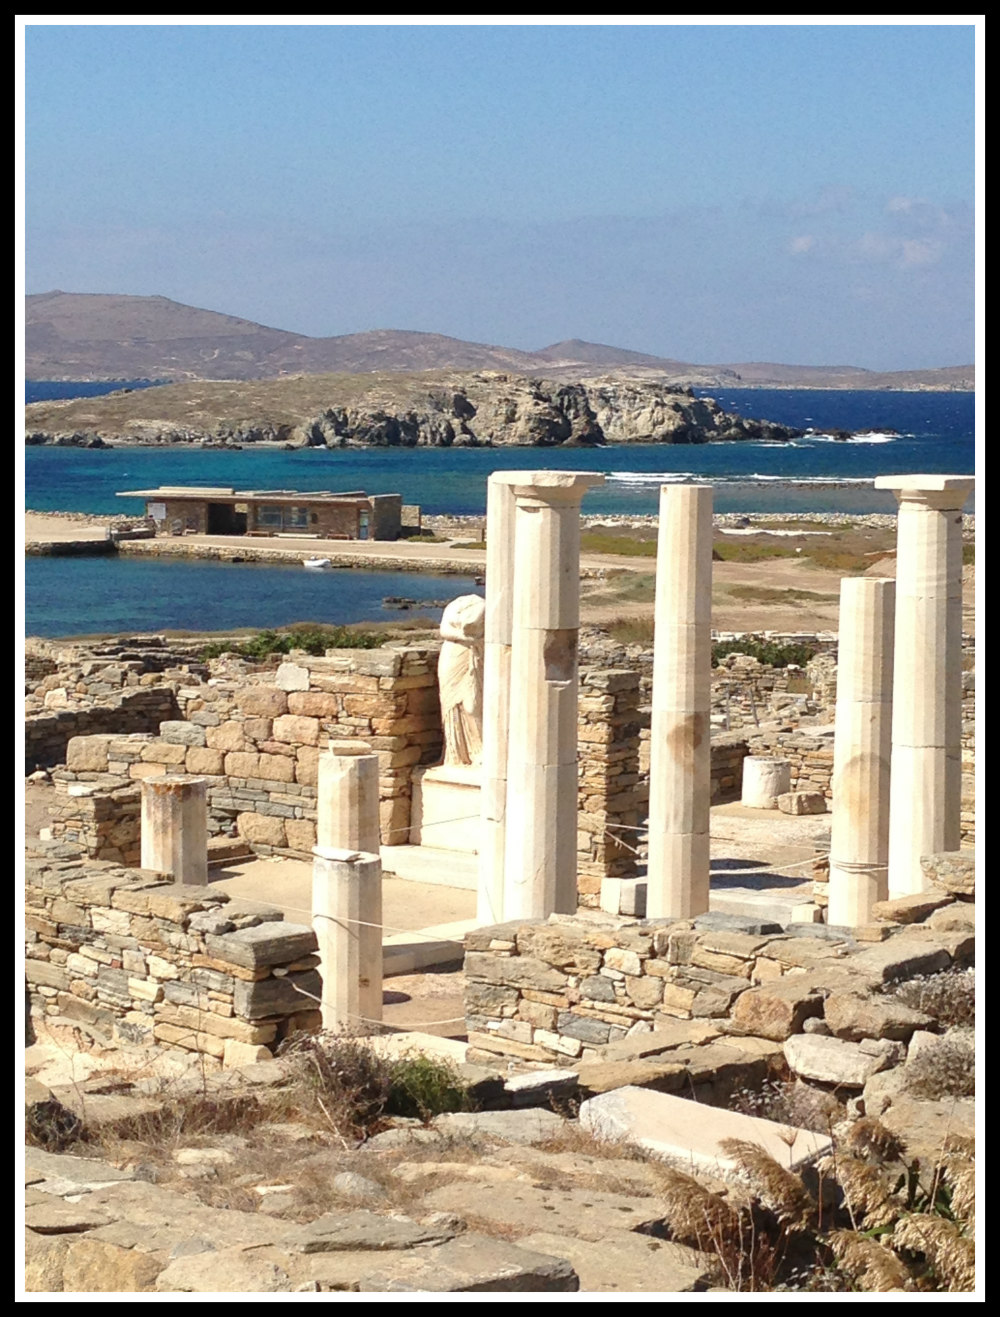 Delos - near Mykonos island, Greece. An historical site like no other. Life Beyond Borders